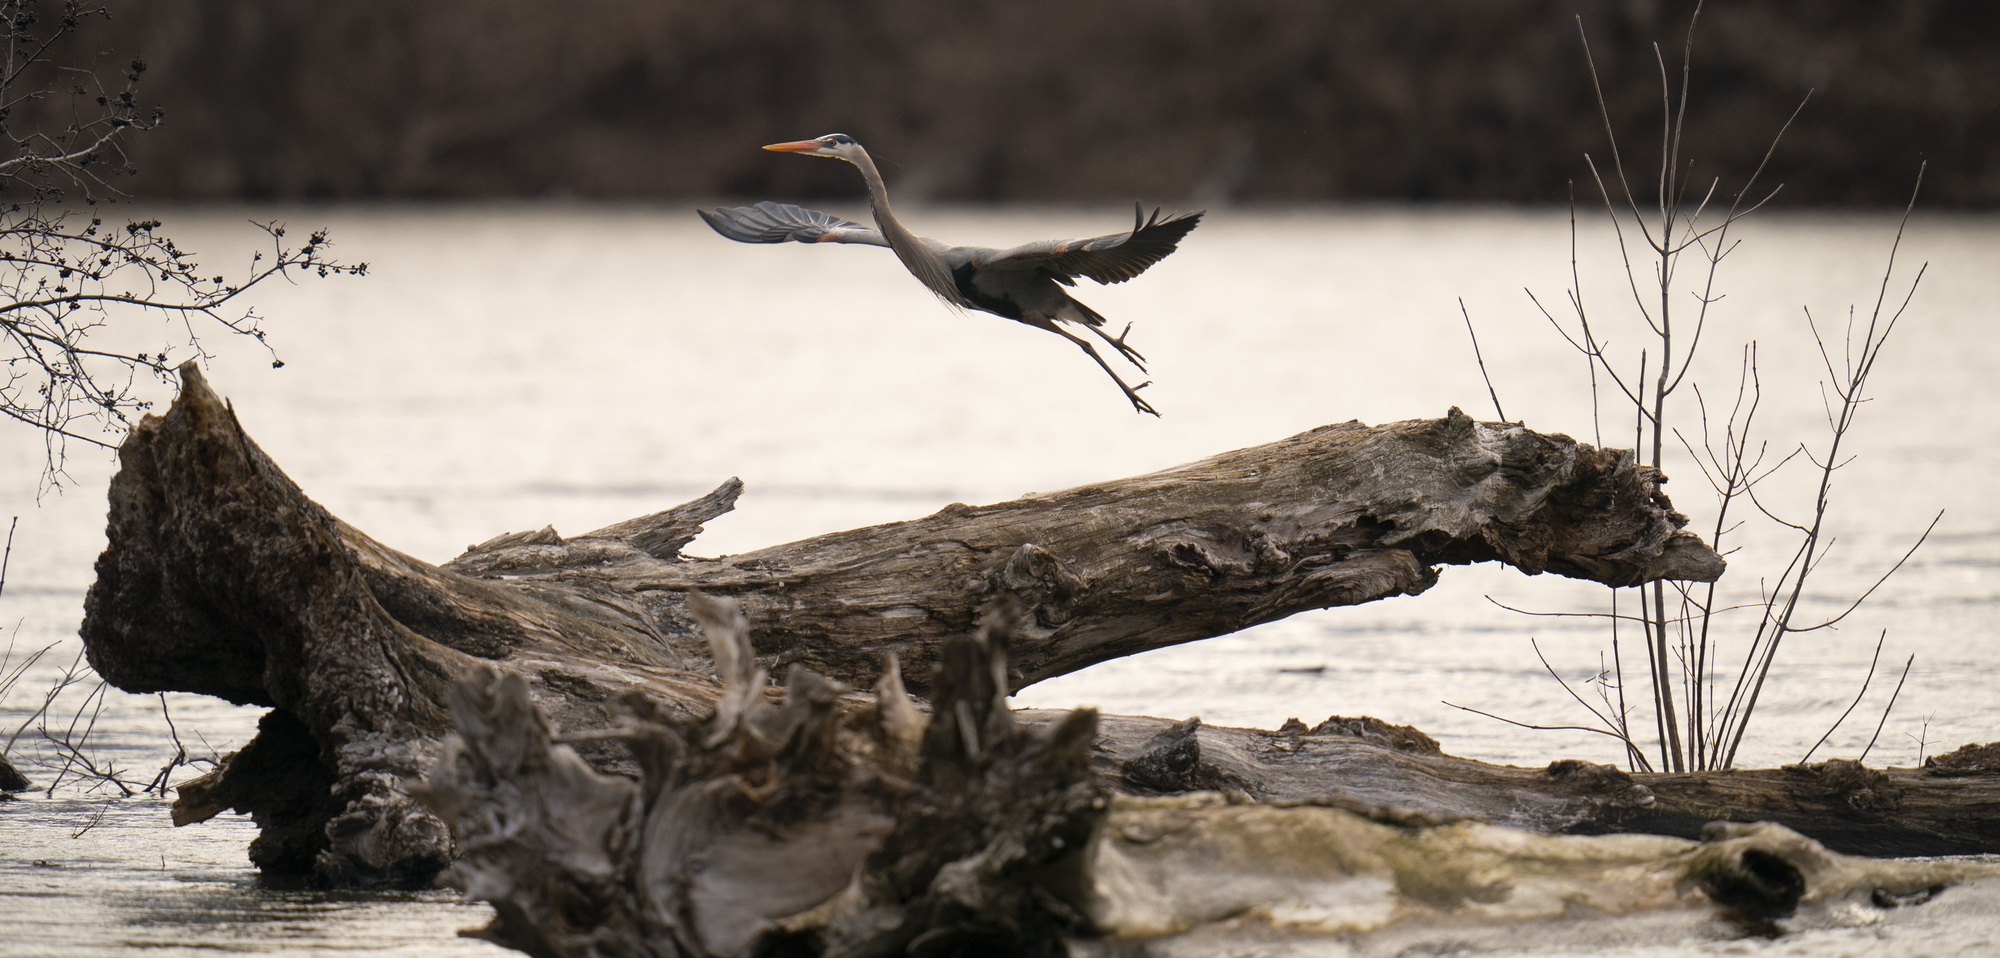 The great blue heron rookery along the Mississippi River in Minneapolis was a favorite spot for a budding birder.